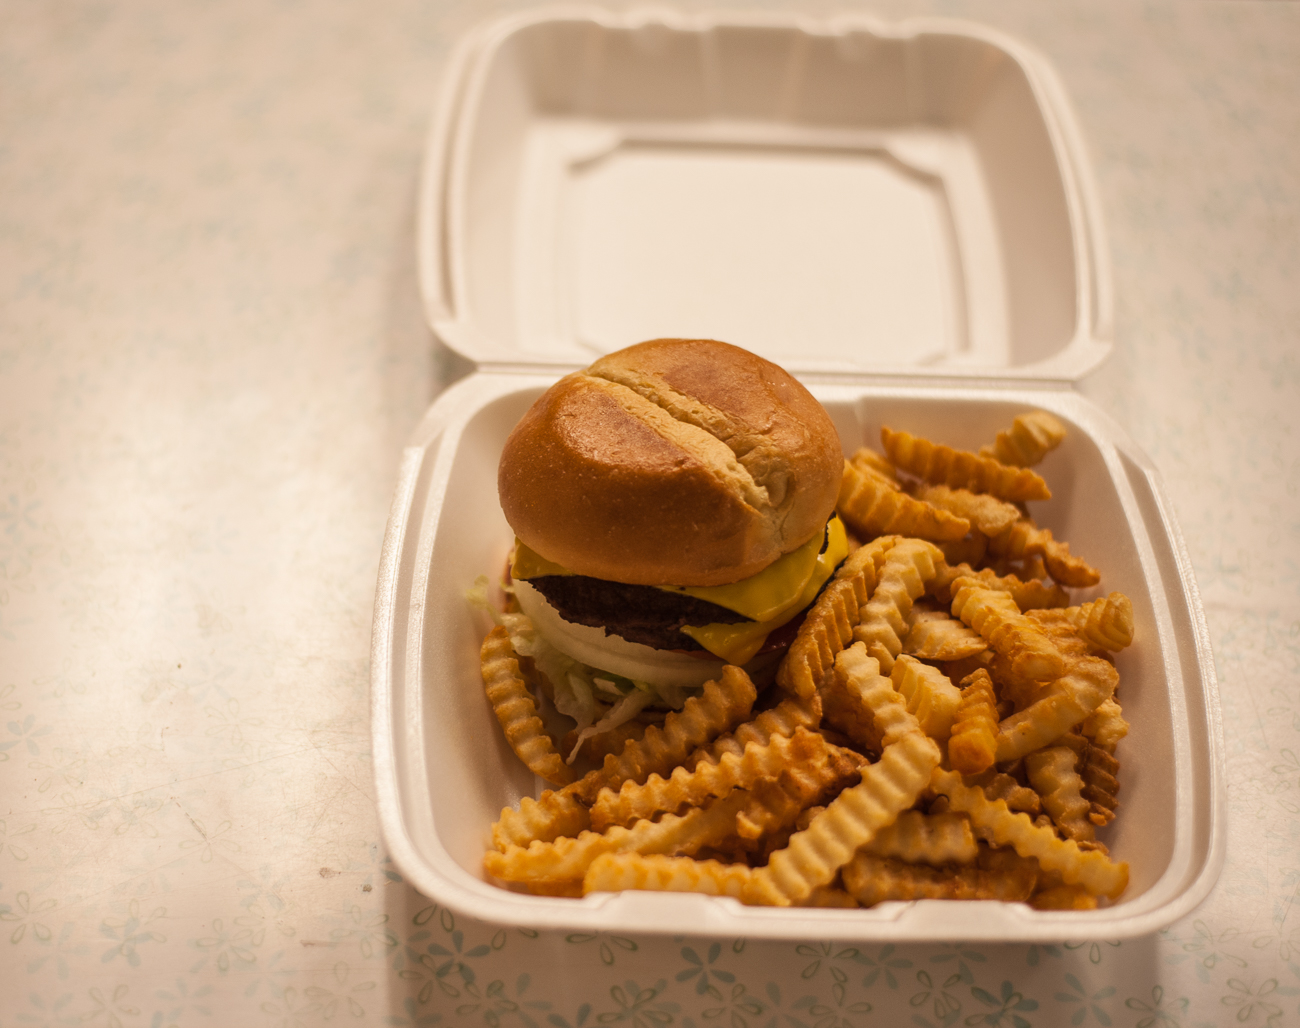 Double cheese burger & fries / Image: Kellie Coleman // Published: 4.8.20